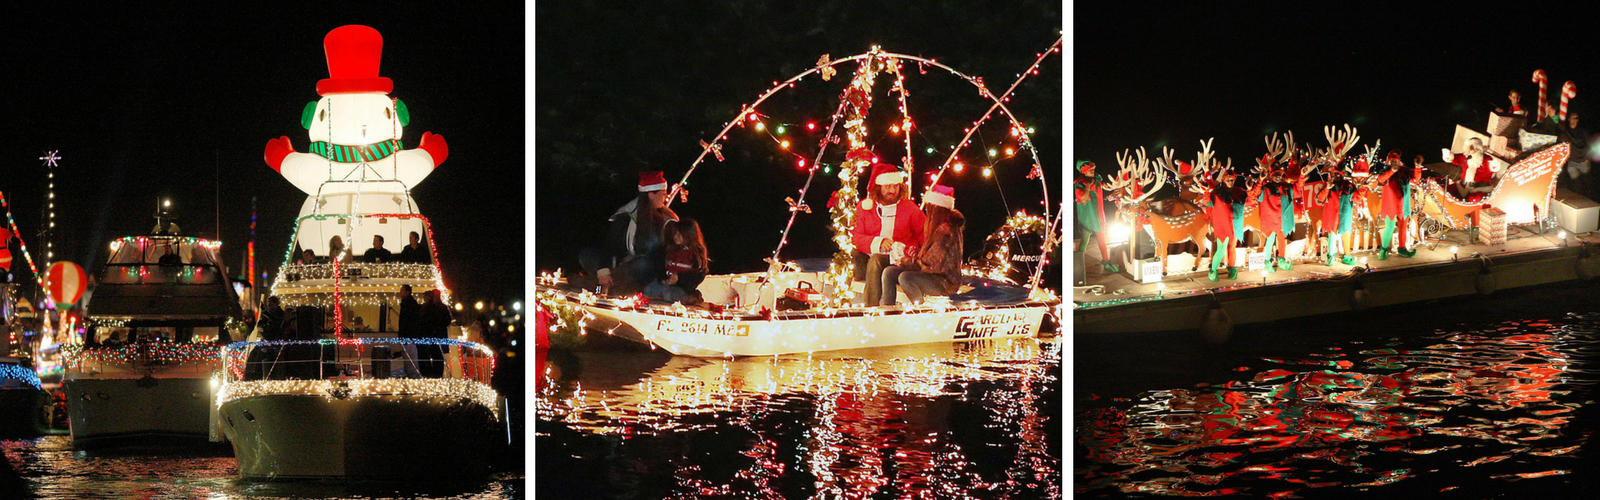 Can't Miss Holiday Events On Florida's Treasure Coast